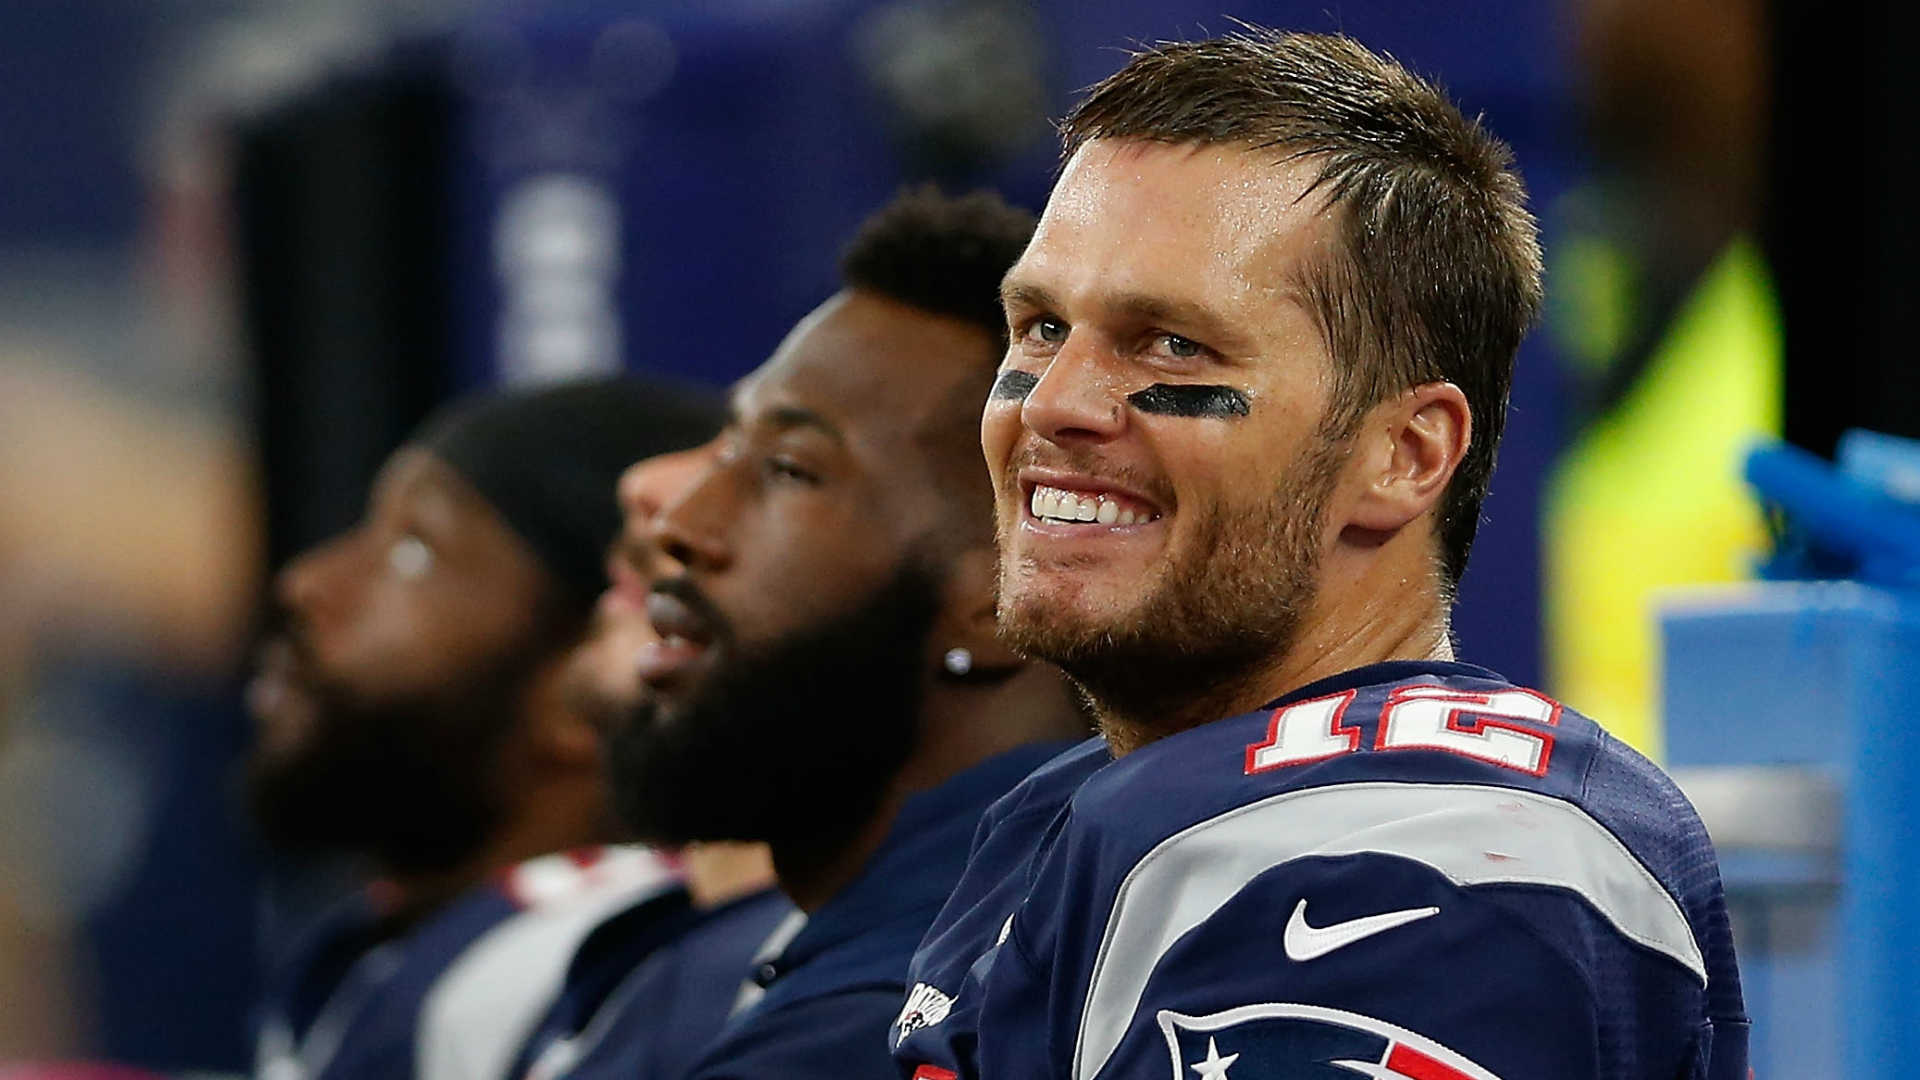 TomBrady-1015-Getty-US-FTR